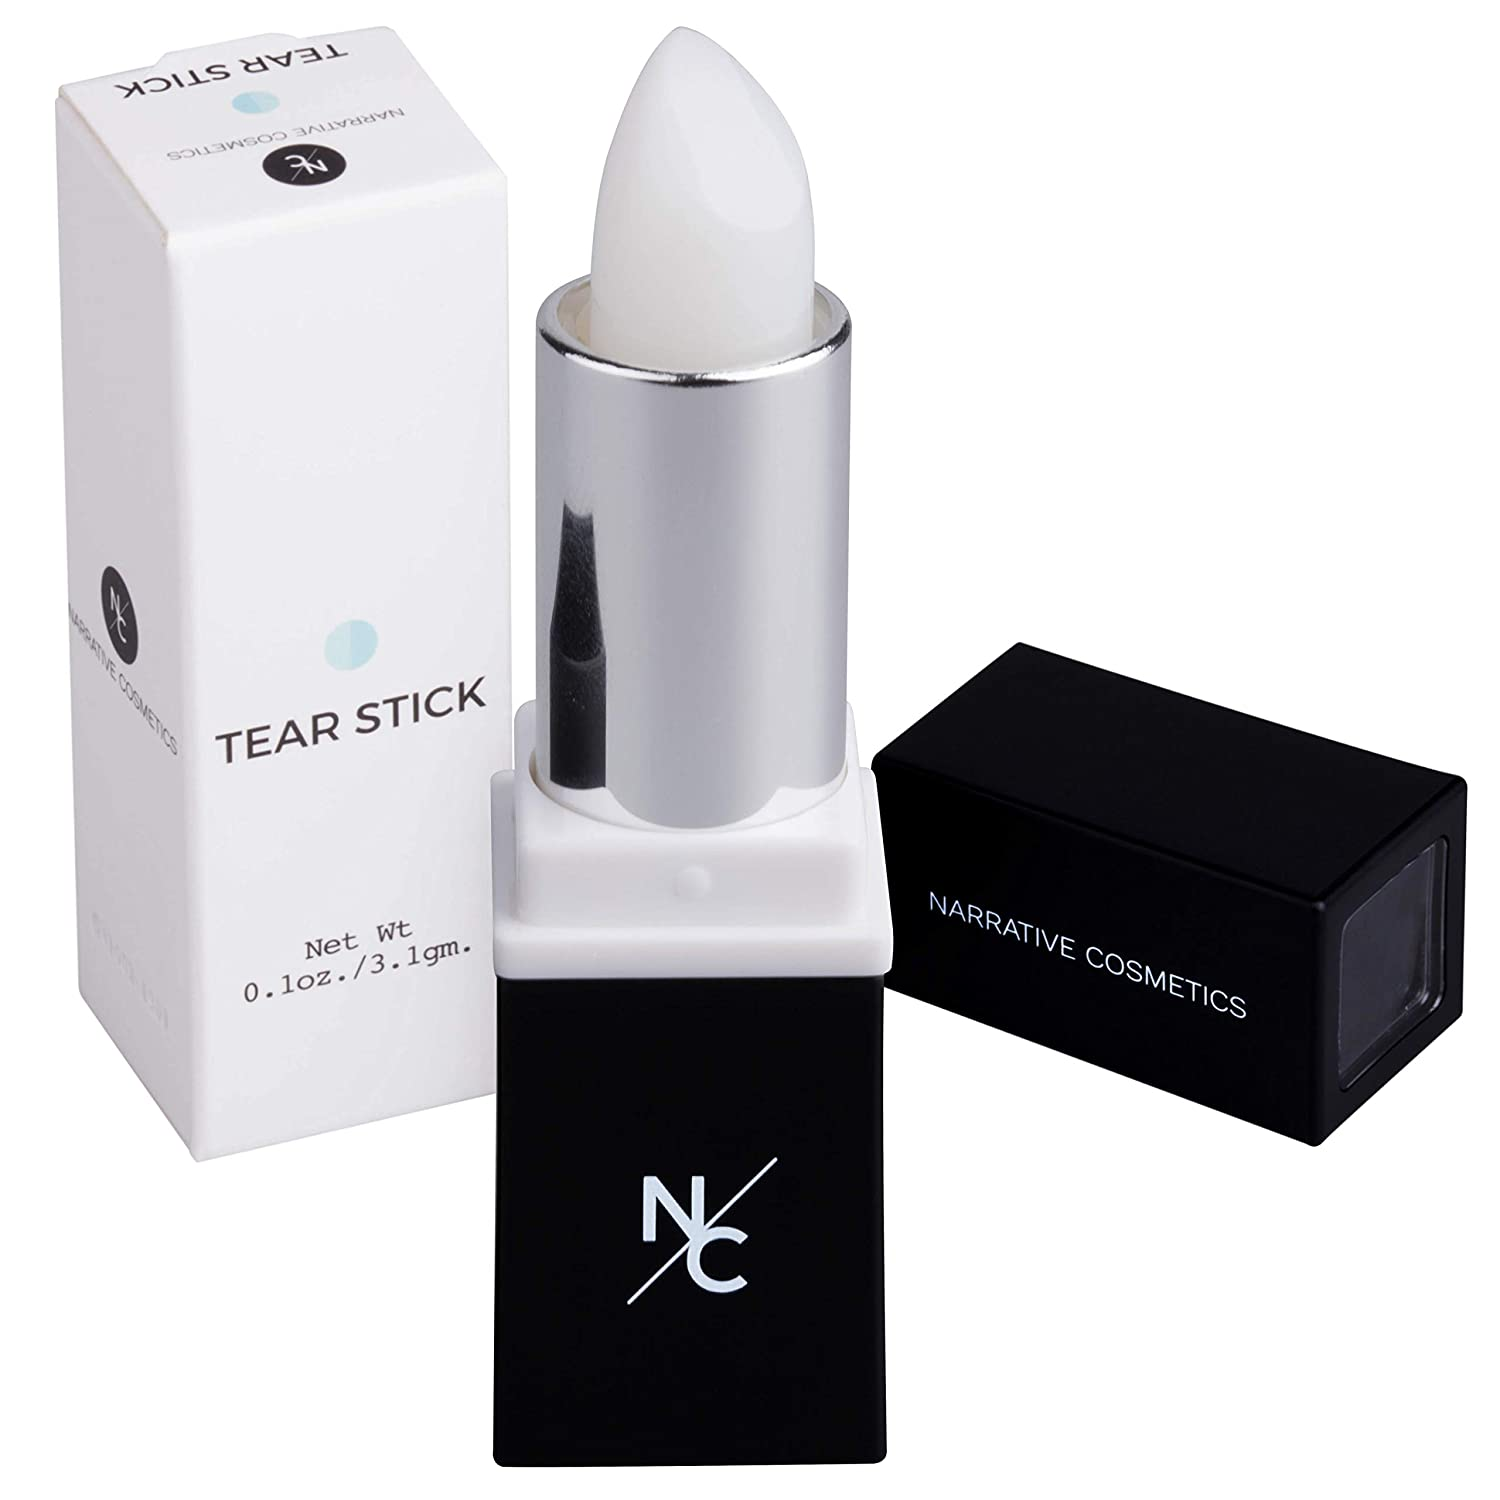 Narrative Cosmetics Menthol Infused Tear Stick for Film and Theater - Perfect for Creating Natural Tears - Cry on Cue